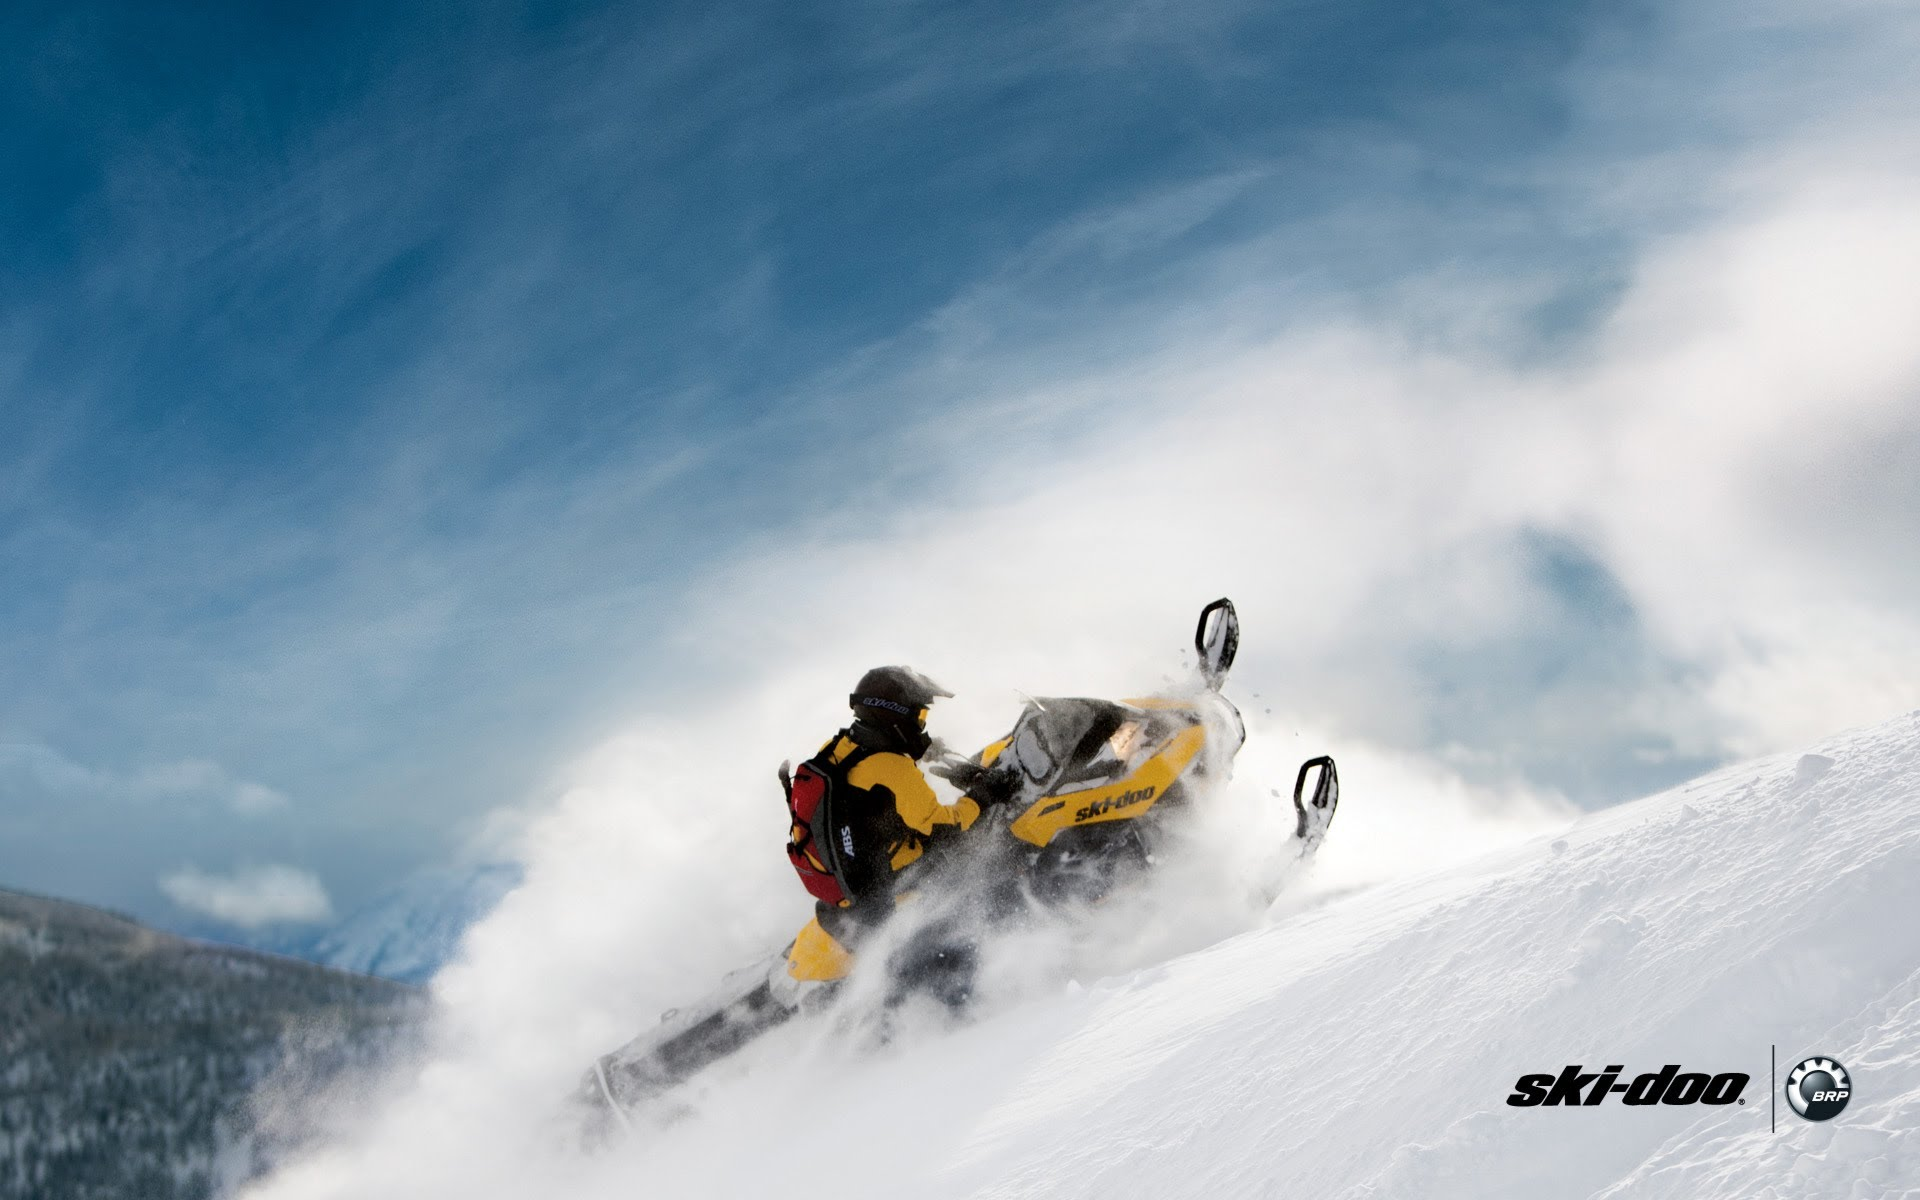 Download Ski Doo 2788